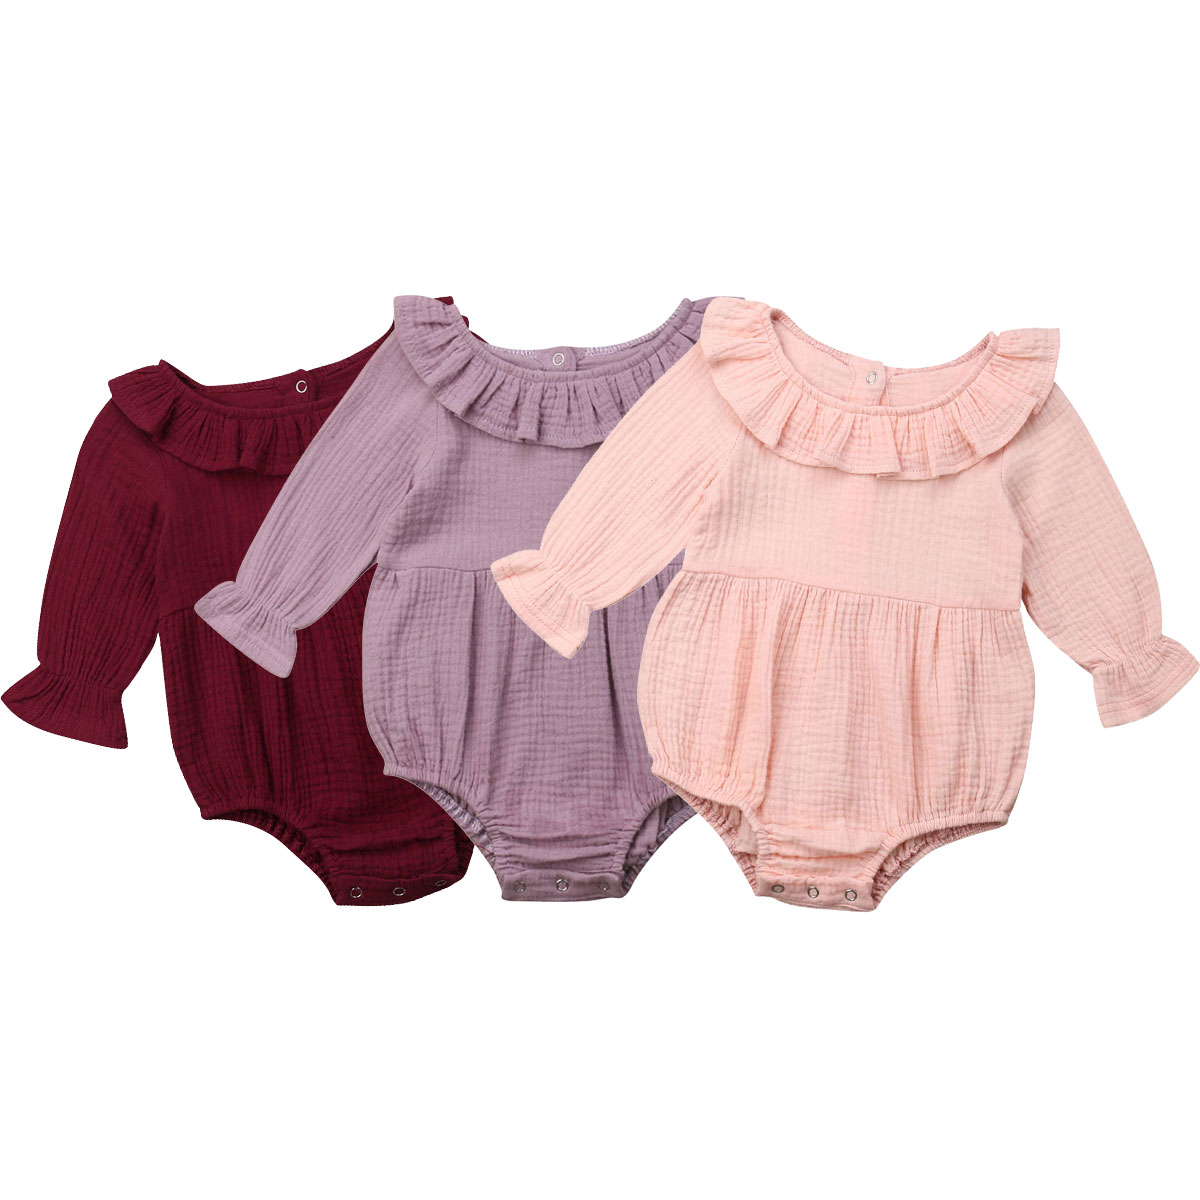 Infant Newborn Baby Girls Clothing 2019 New Long Sleeve Ruffles   Romper   Baby Girl Jumpsuit Playsuit Baby Costumes Solid